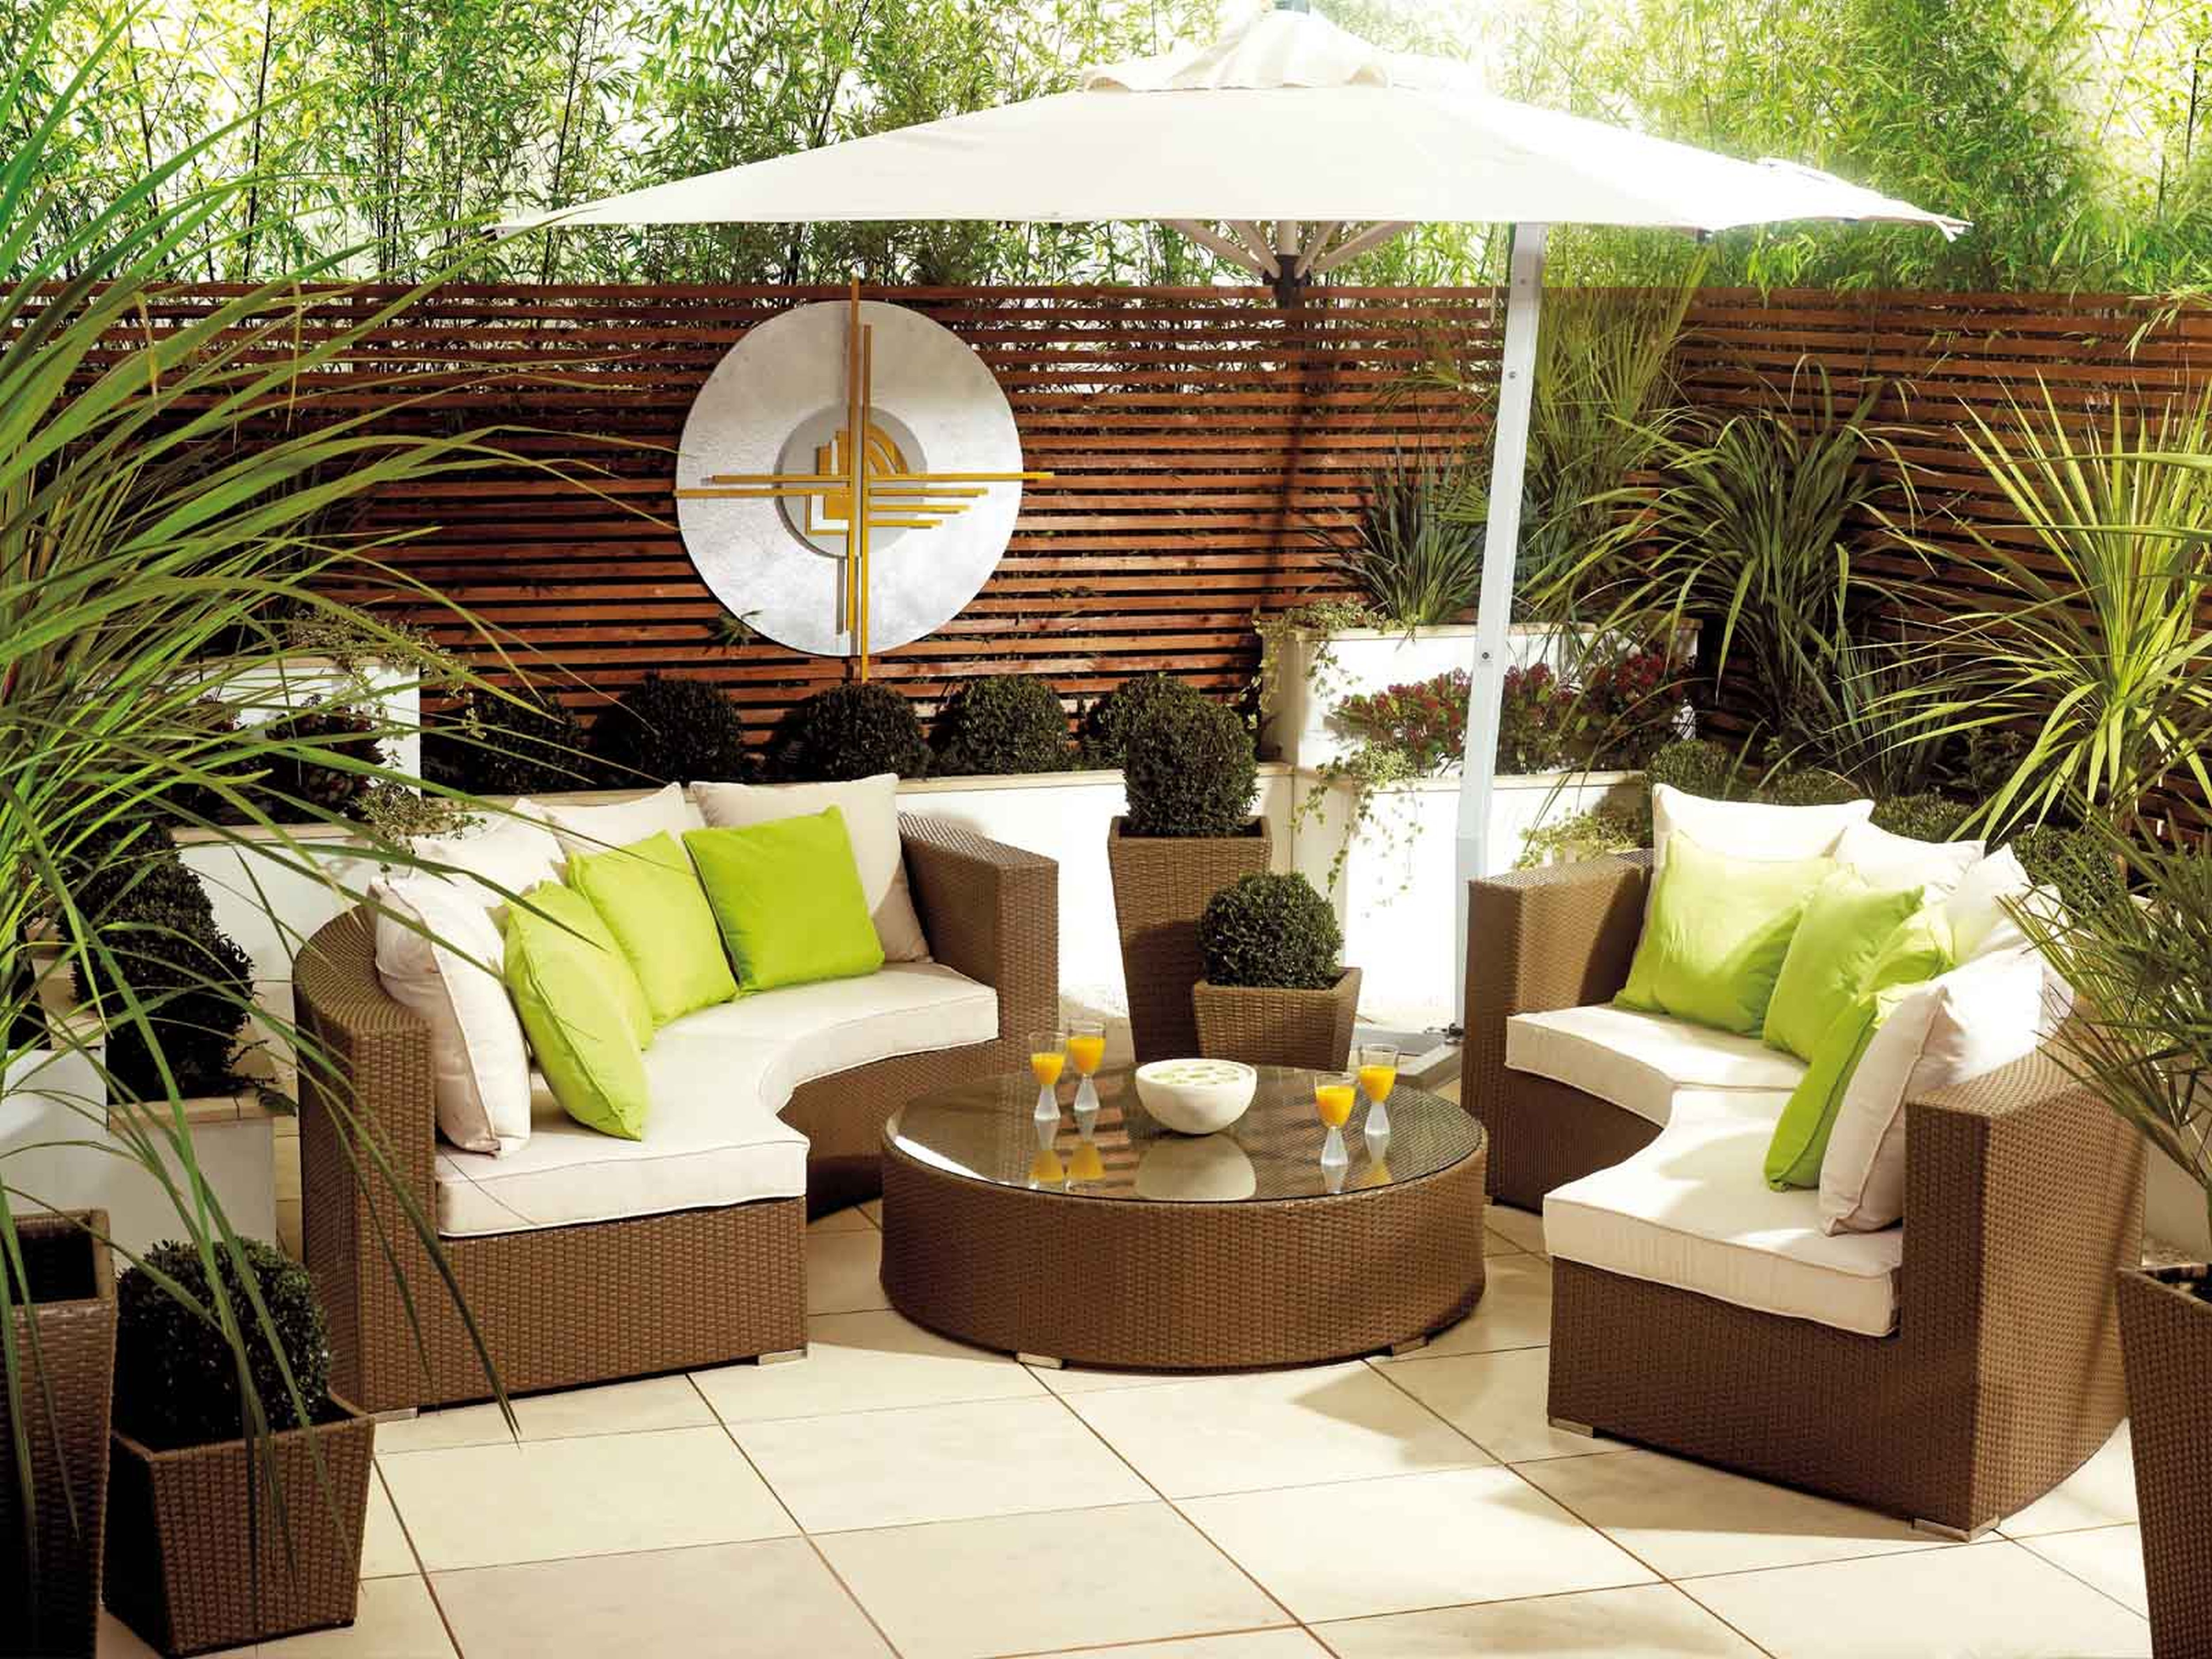 Ikea Outdoor | Ikea Lawn Furniture Way To Color Outdoor Living Space With Fashion